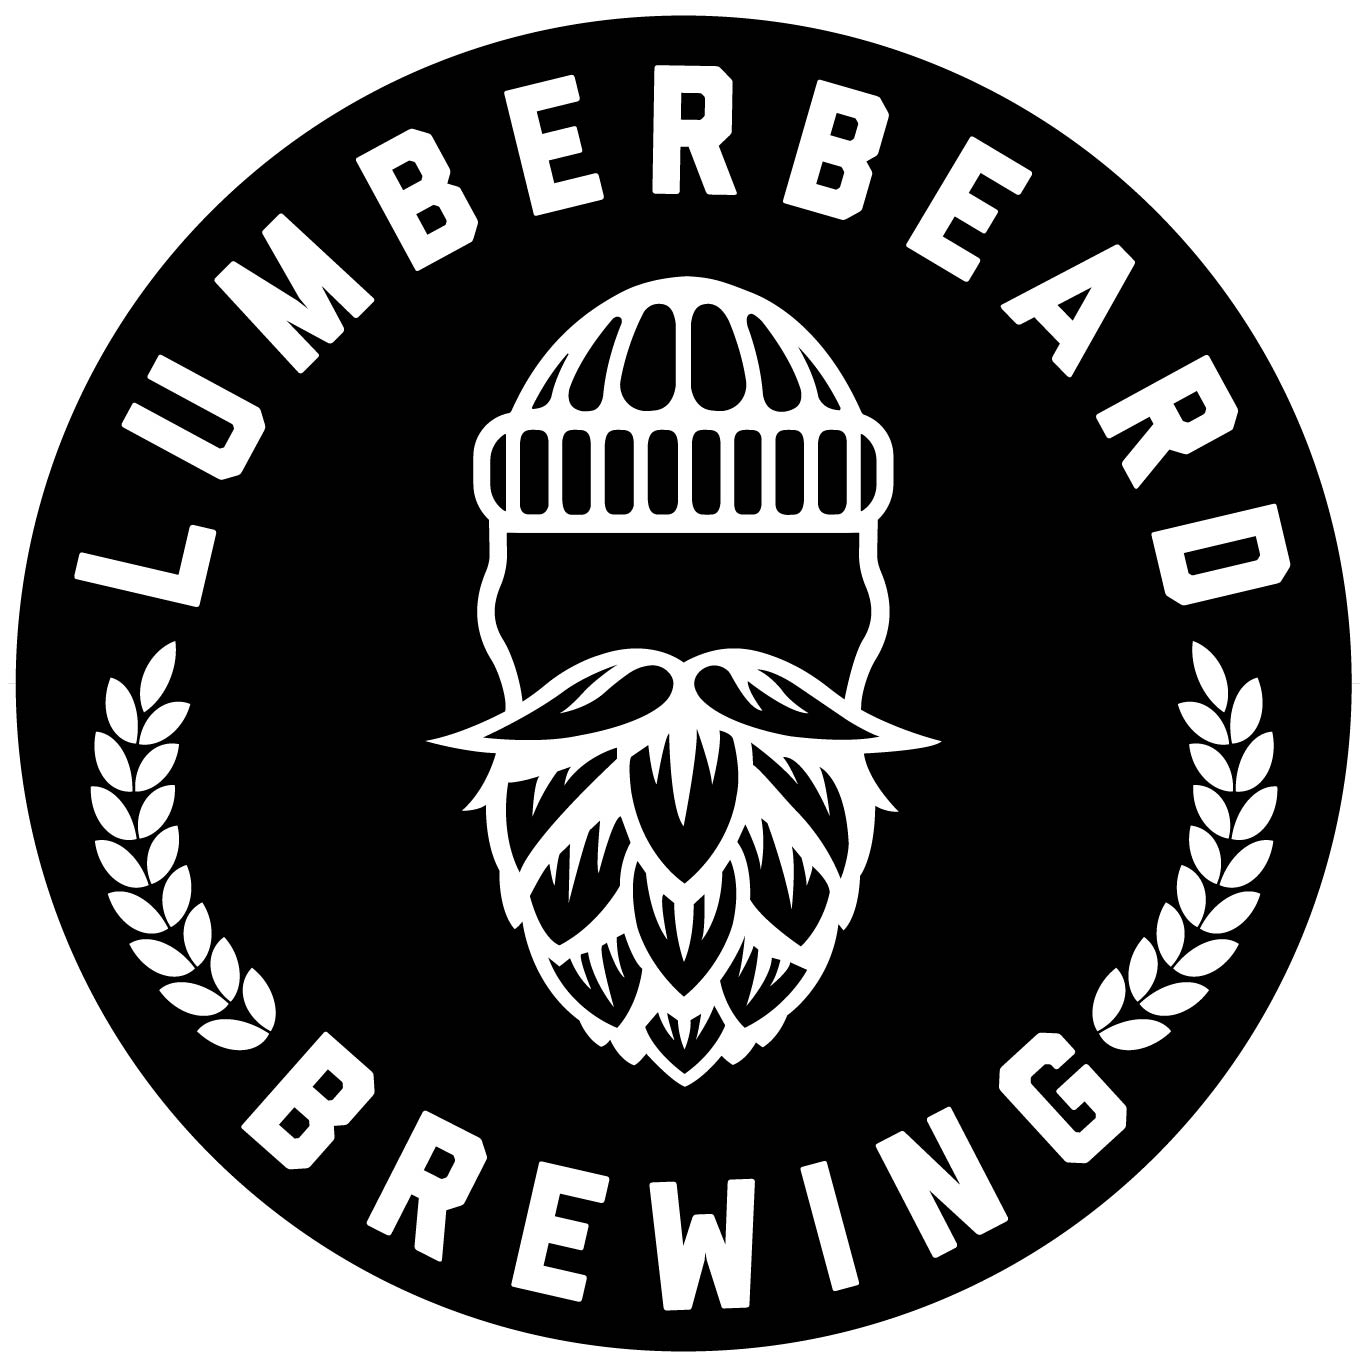 Lumberbeard Brewing